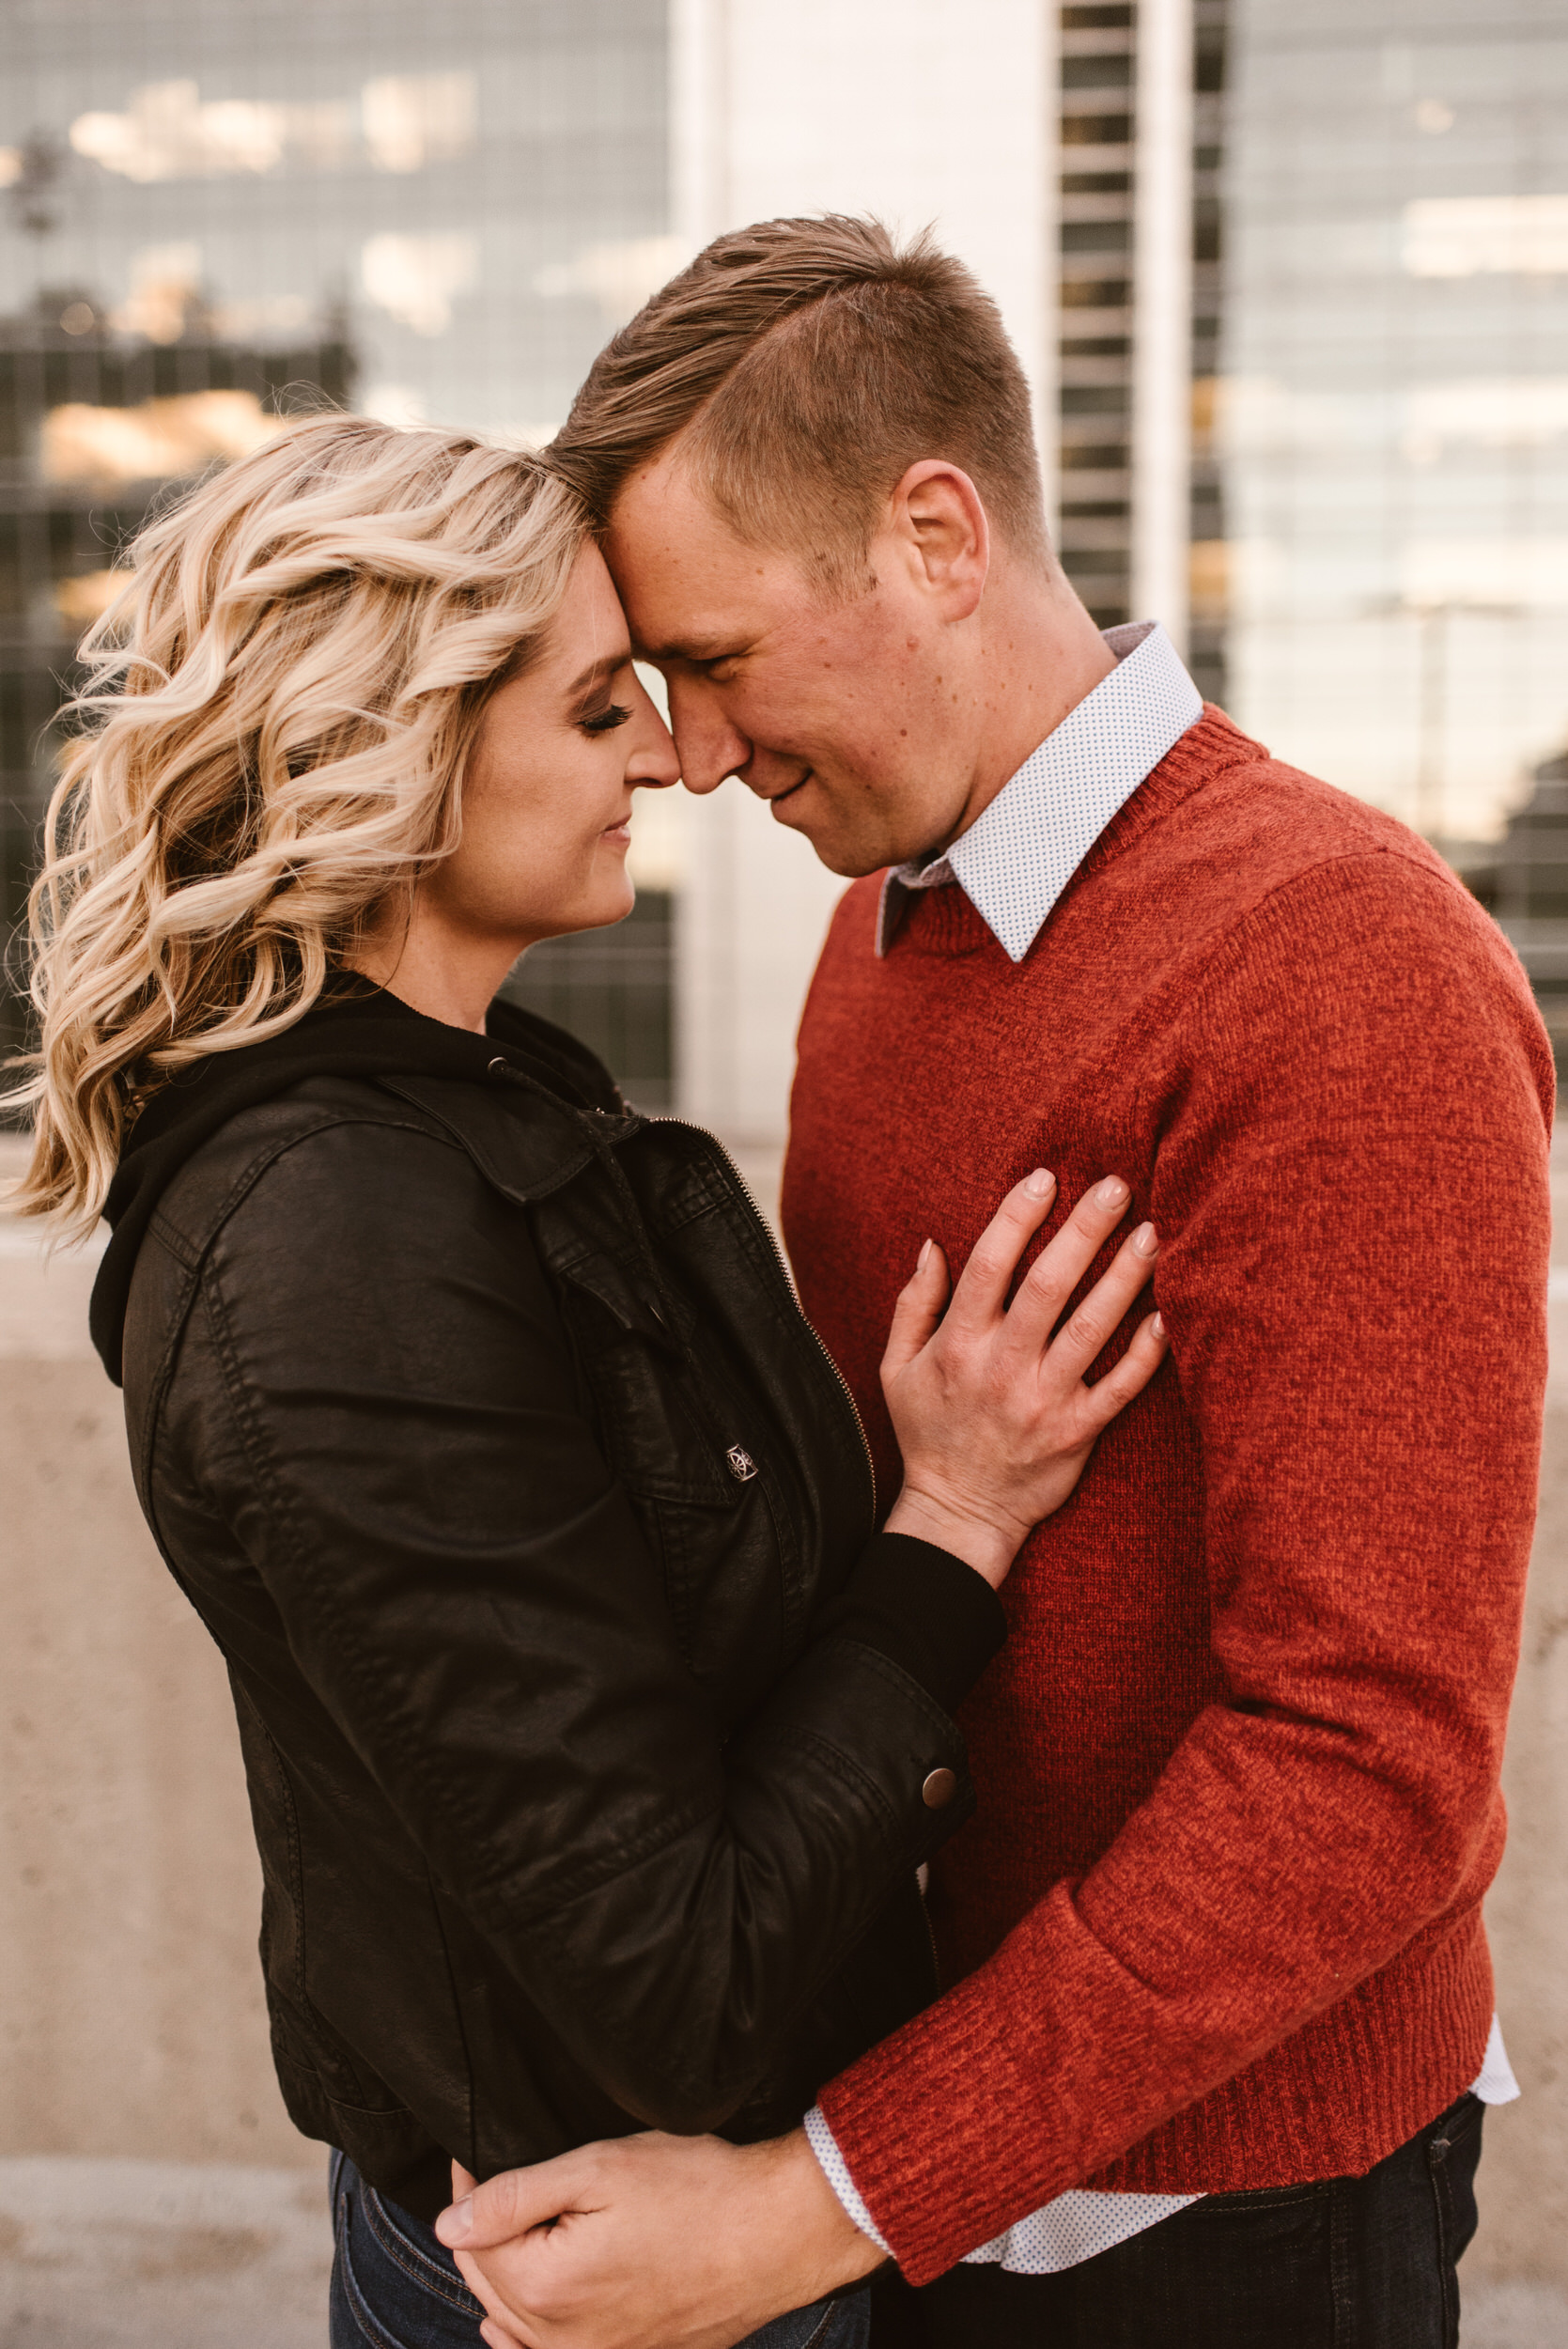 Gene Leahy Mall Omaha Engagement Session Kaylie Sirek Photography 30.jpg